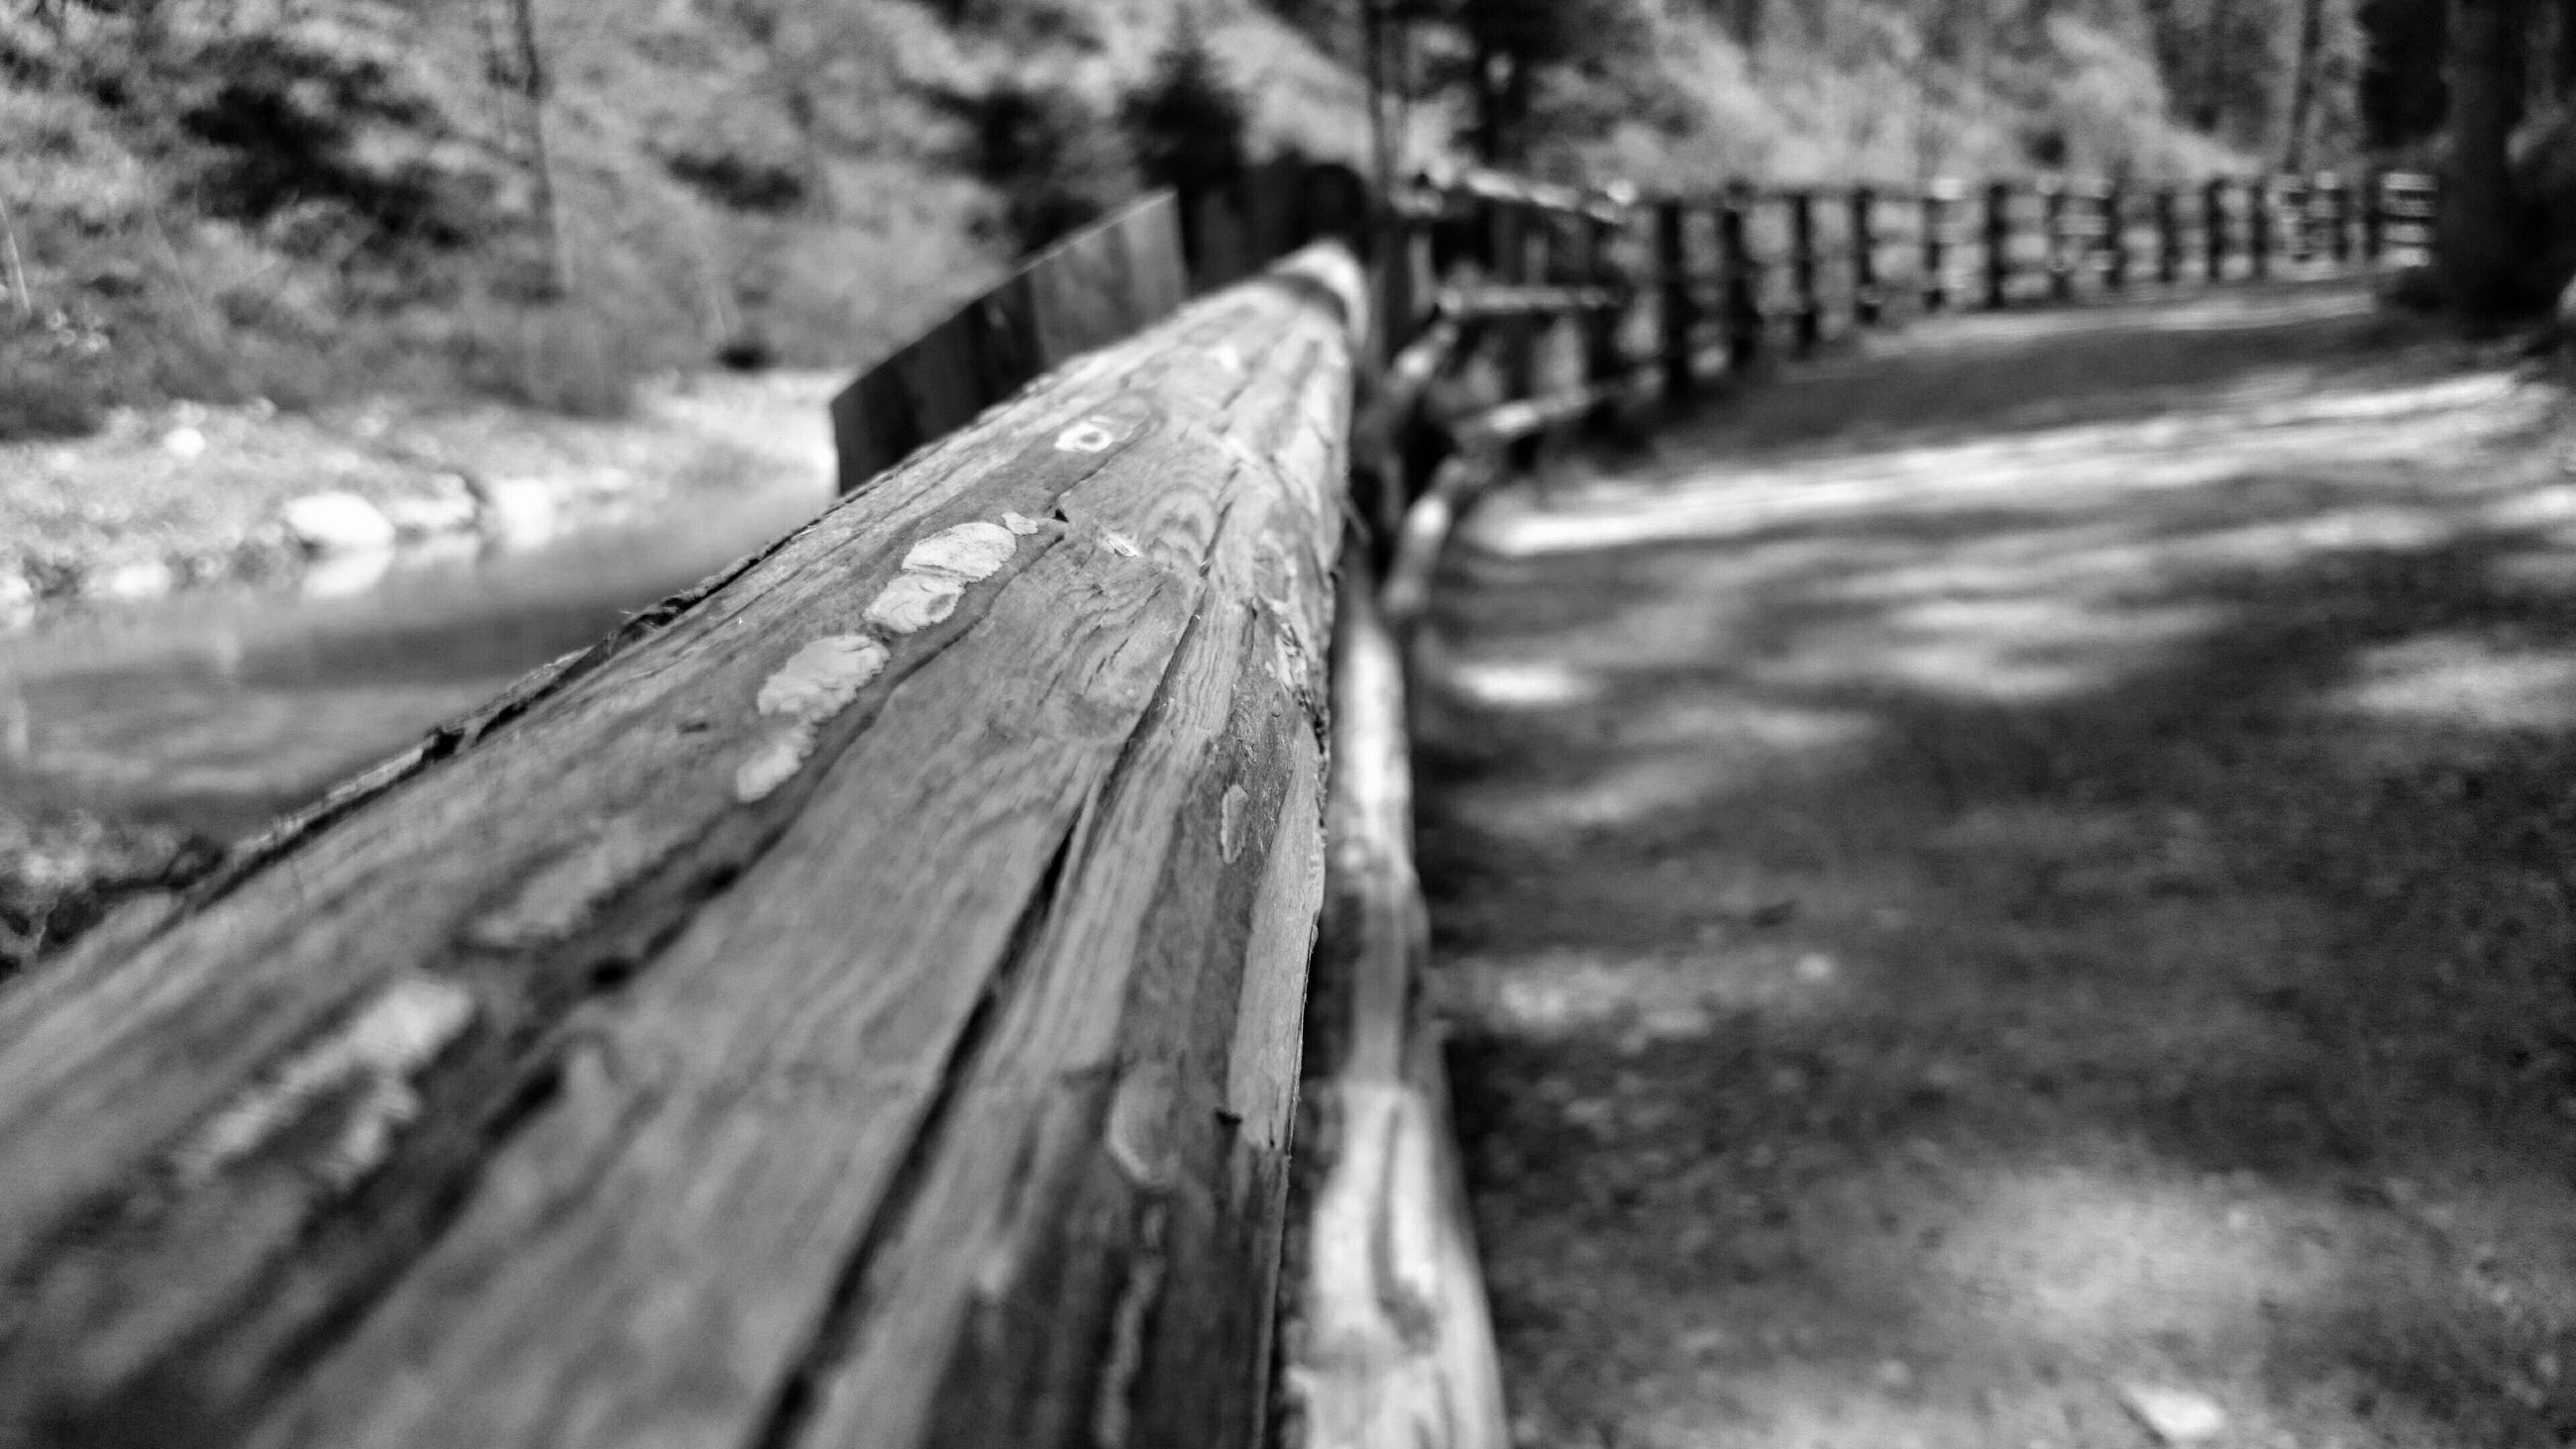 wood - material, wooden, wood, plank, focus on foreground, selective focus, close-up, textured, fence, boardwalk, log, weathered, day, outdoors, nature, no people, wooden post, old, tree, surface level